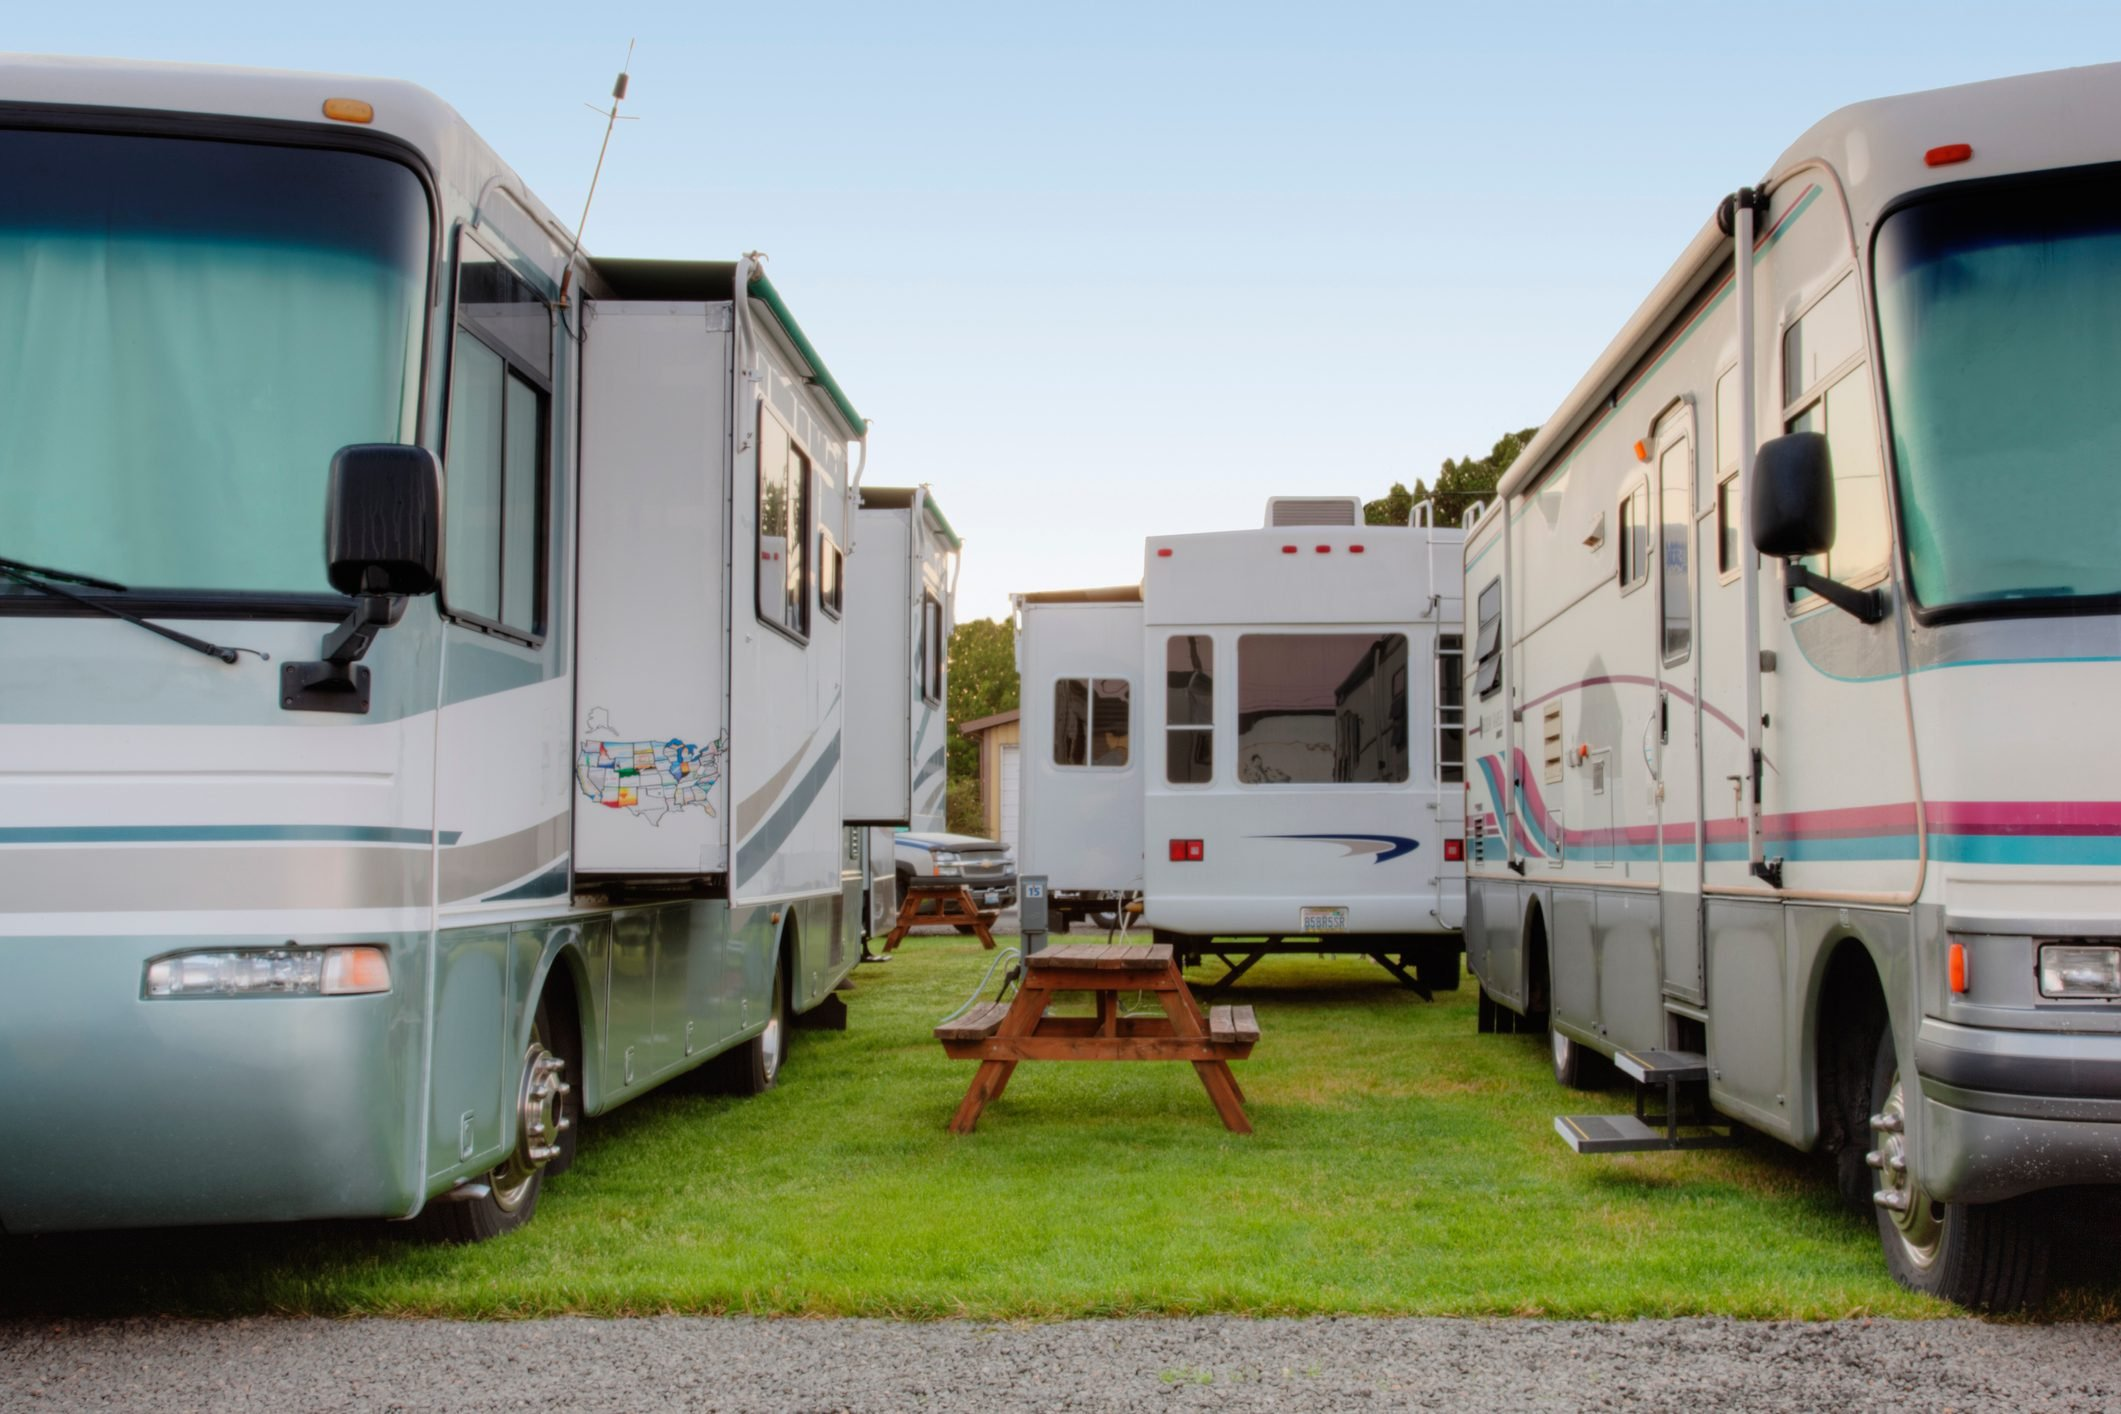 RVs in park